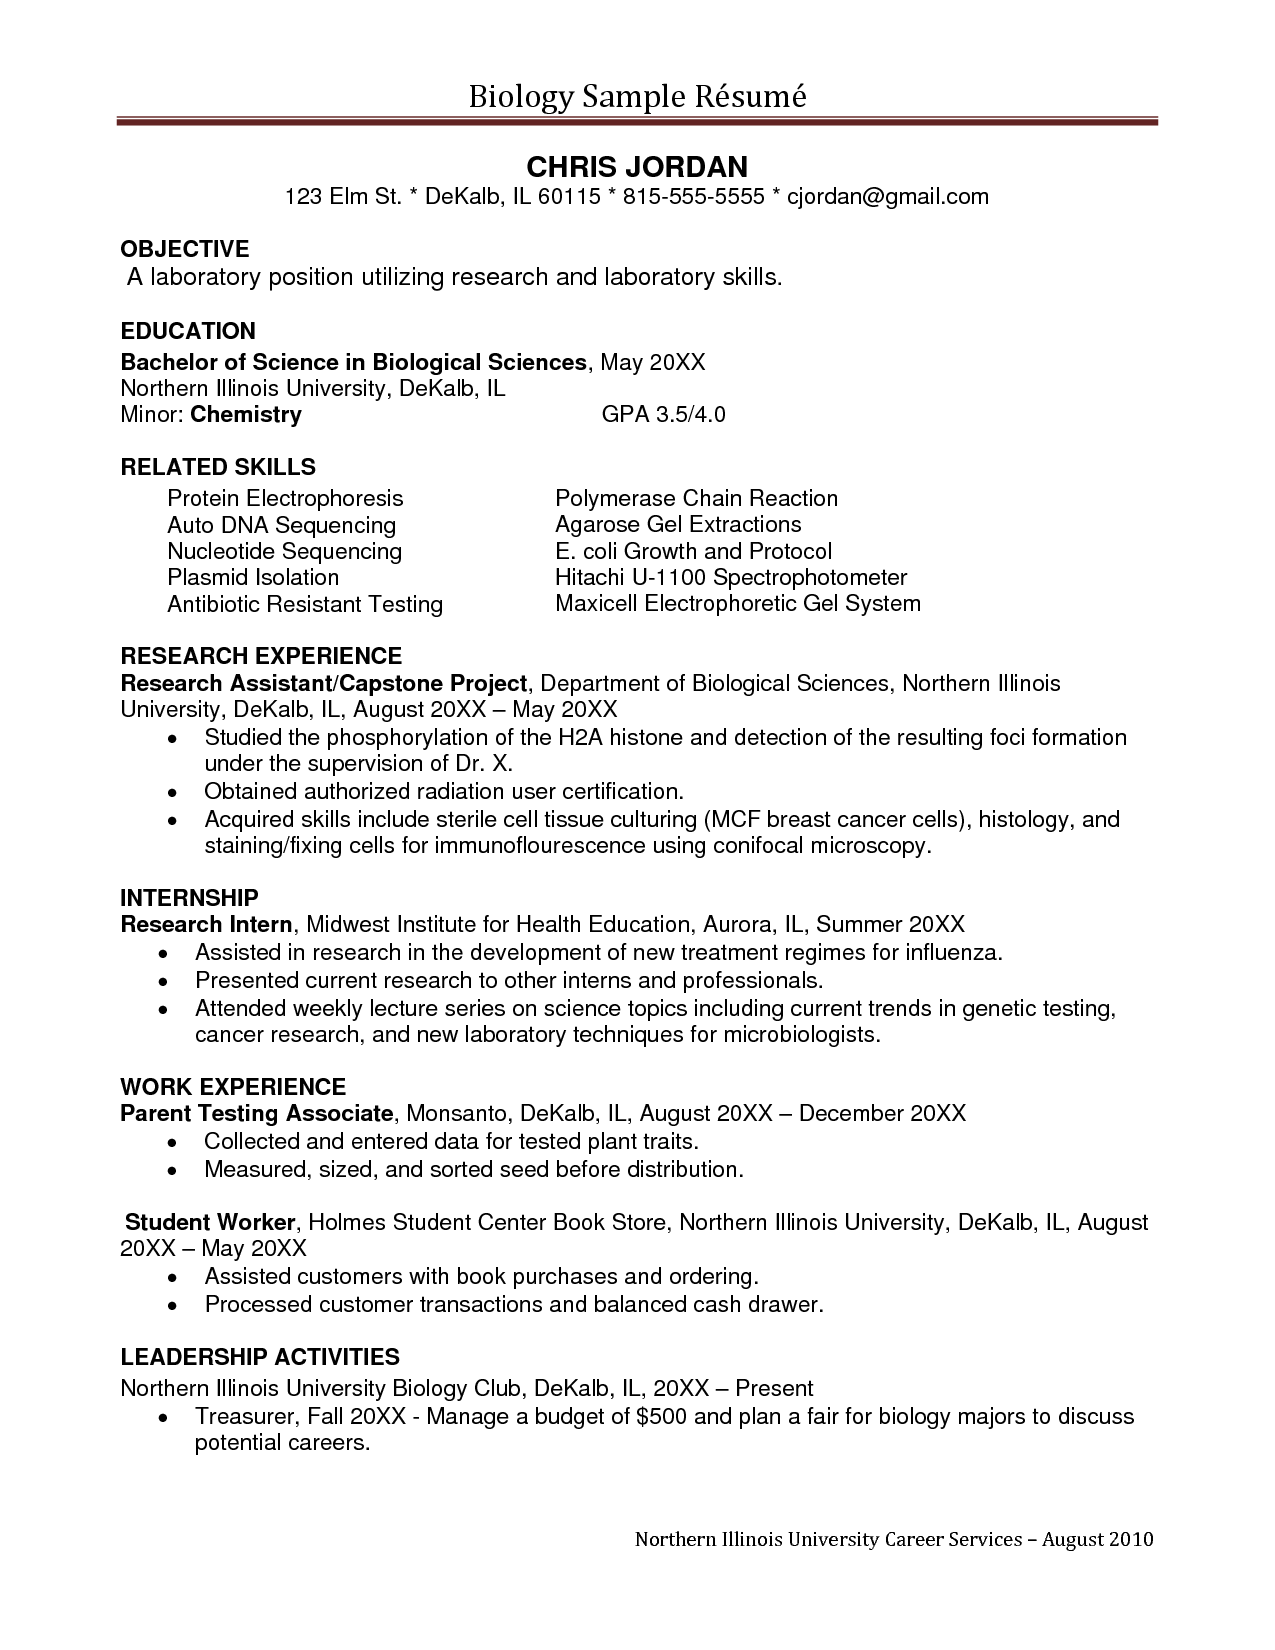 Sample, Undergraduate Research Assistant Resume Sample,ĺ Administrative Assistant  Resume Objective Examples, Medical  Research Assistant Resume Examples